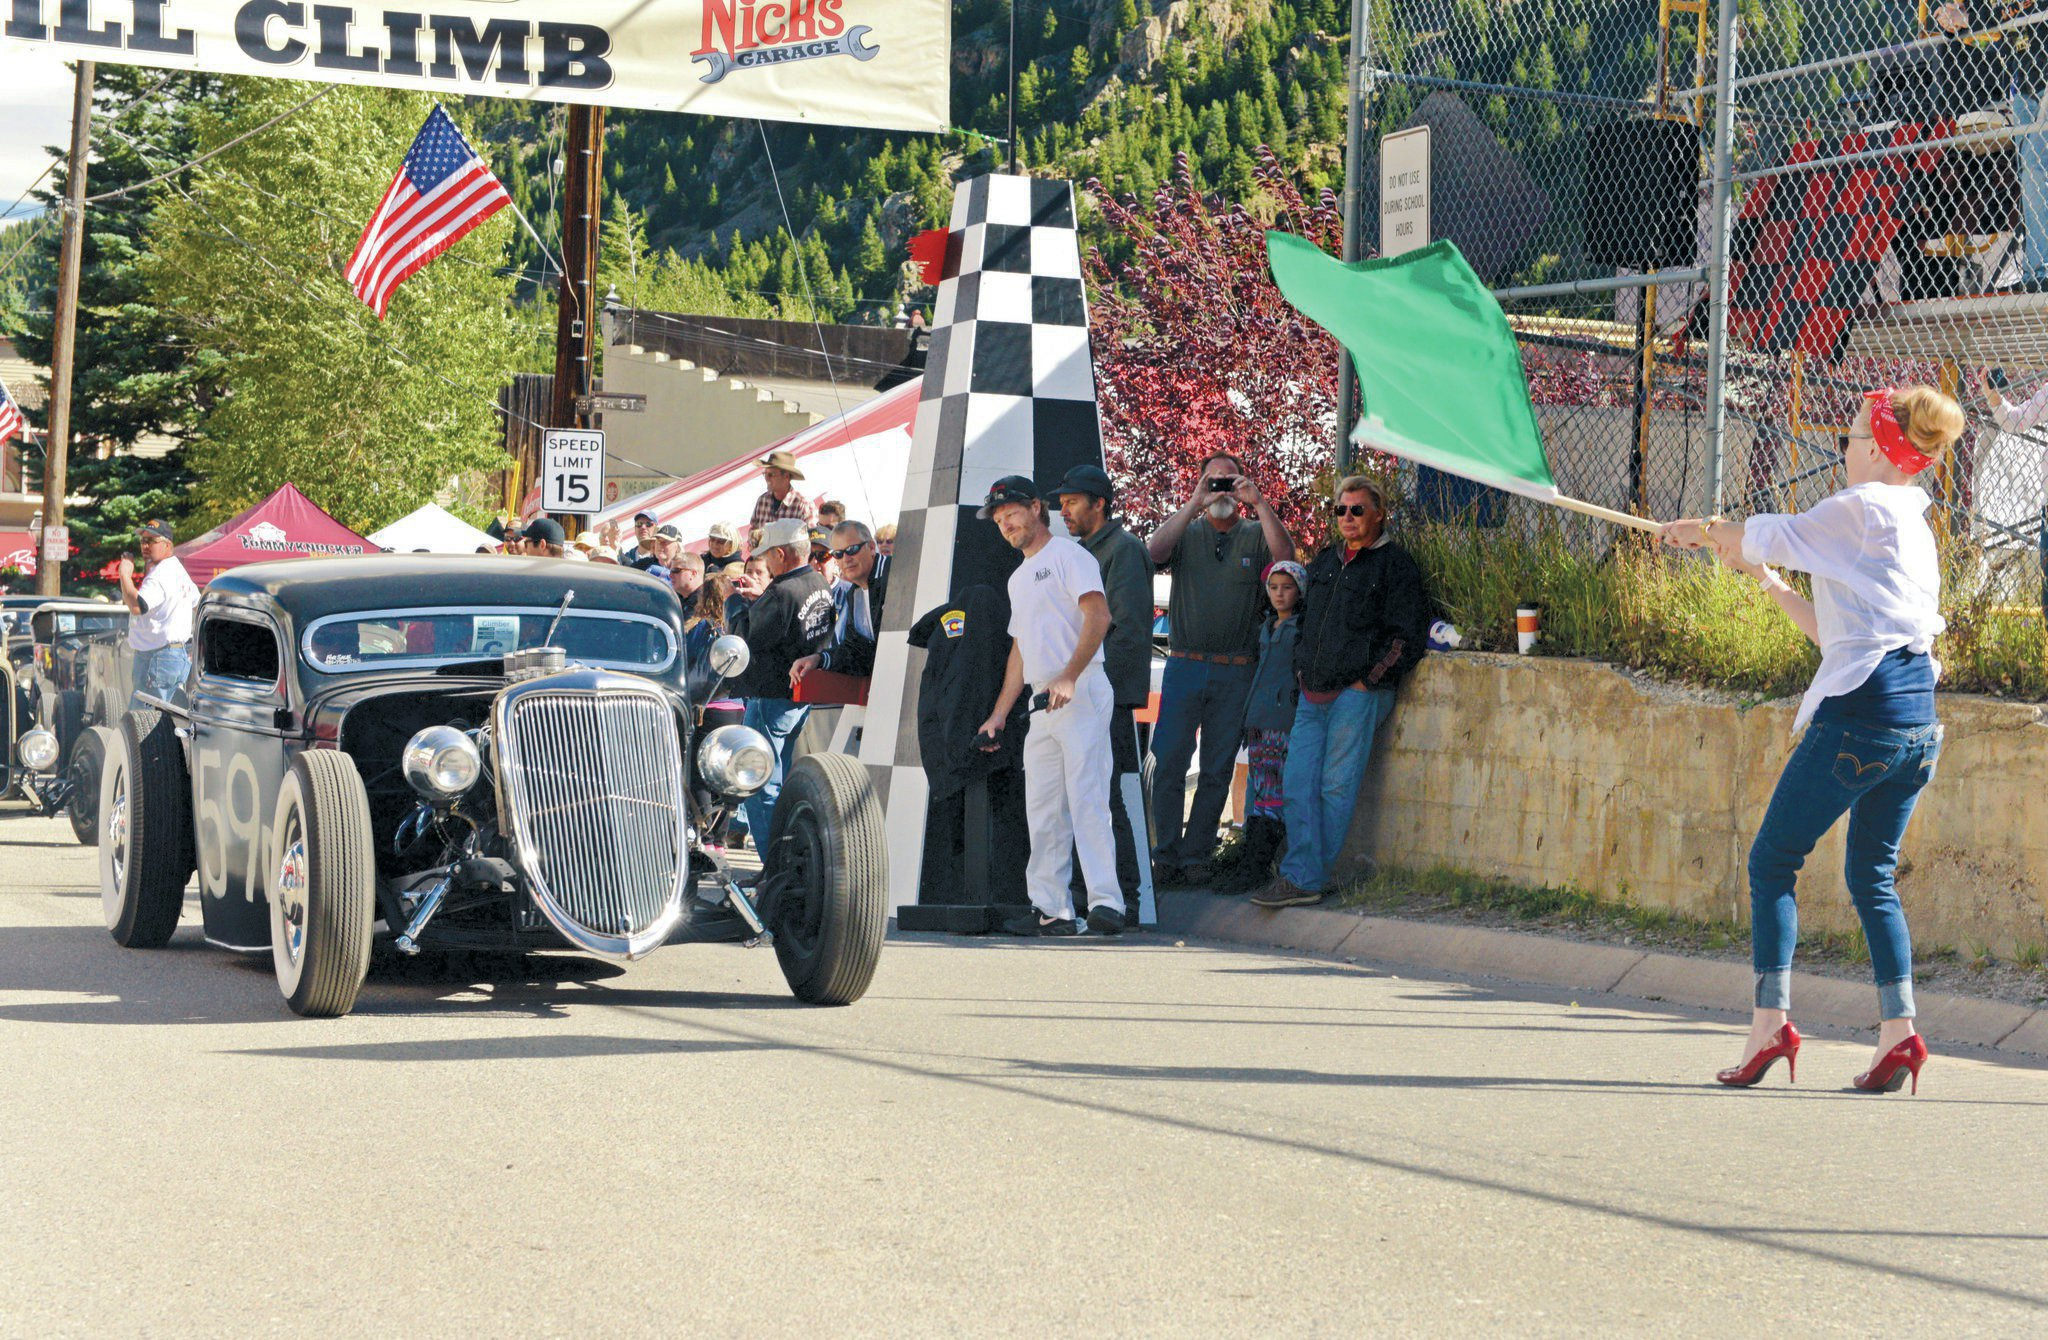 Kayleena Bambina gets the participants moving at the starting line. Here, Woody Bair heads off the line in his '36 Ford pickup powered by a 365ci Caddy motor. This is Woody's backup ride; his Model A had a catastrophic failure on the way to the Hill Climb.